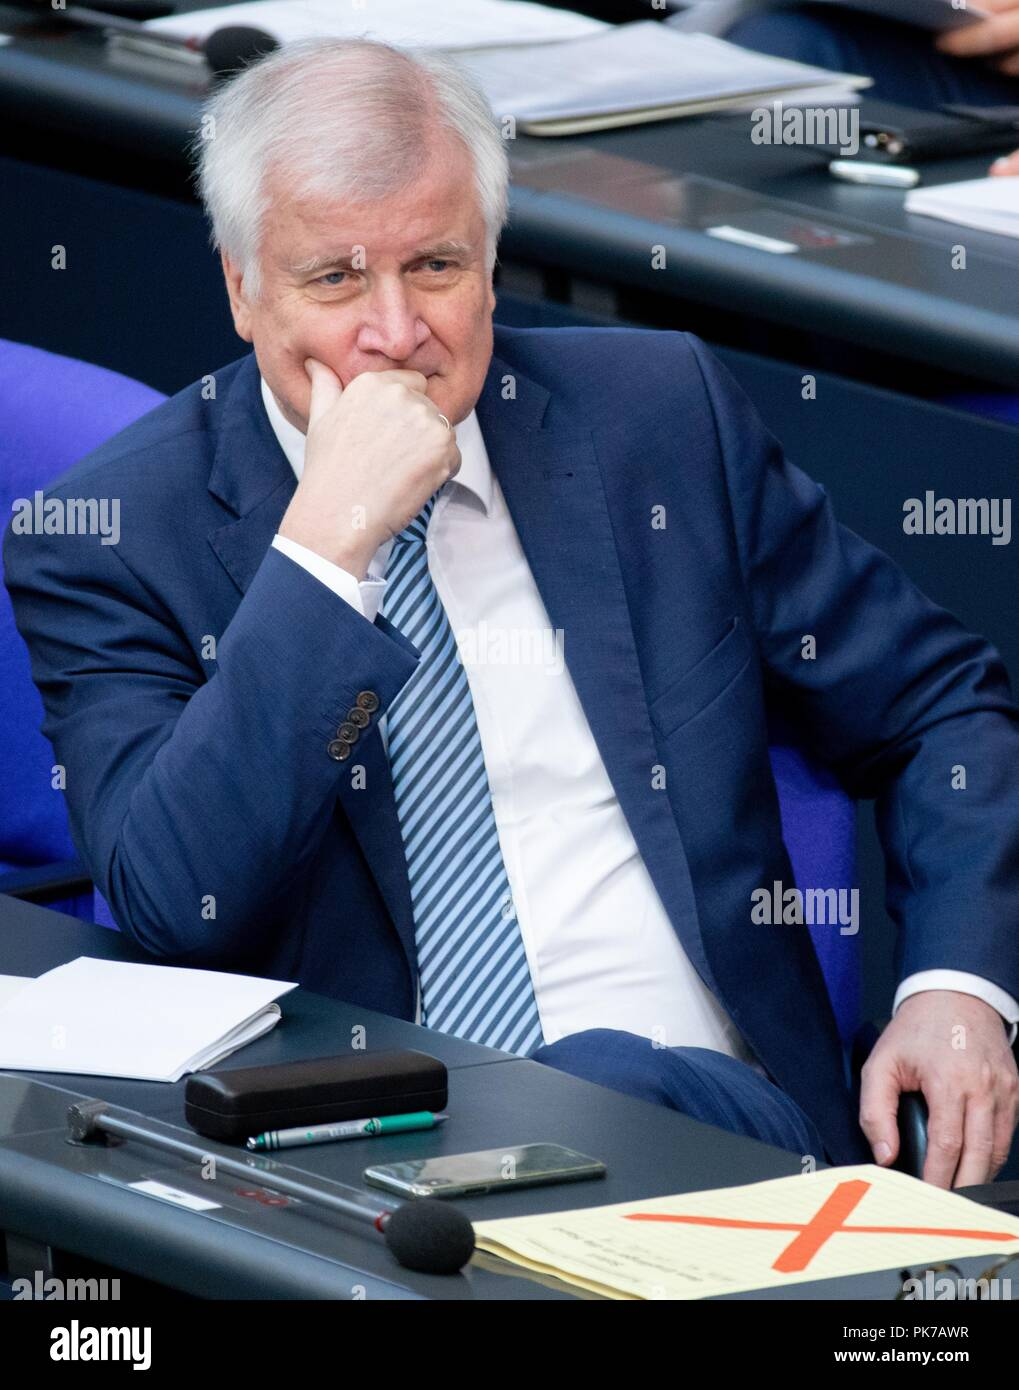 Berlin, Germany. 11 September 2018, Berlin: Horst Seehofer (CSU), Federal Minister of the Interior, for Building and Home, attends the plenary session in the German Bundestag. The main topic of the 47th session of the 19th legislative period is the Federal Government's draft budget 2019 and the federal budget 2018 to 2022. Photo: Bernd von Jutrczenka/dpa Credit: dpa picture alliance/Alamy Live News - Stock Image